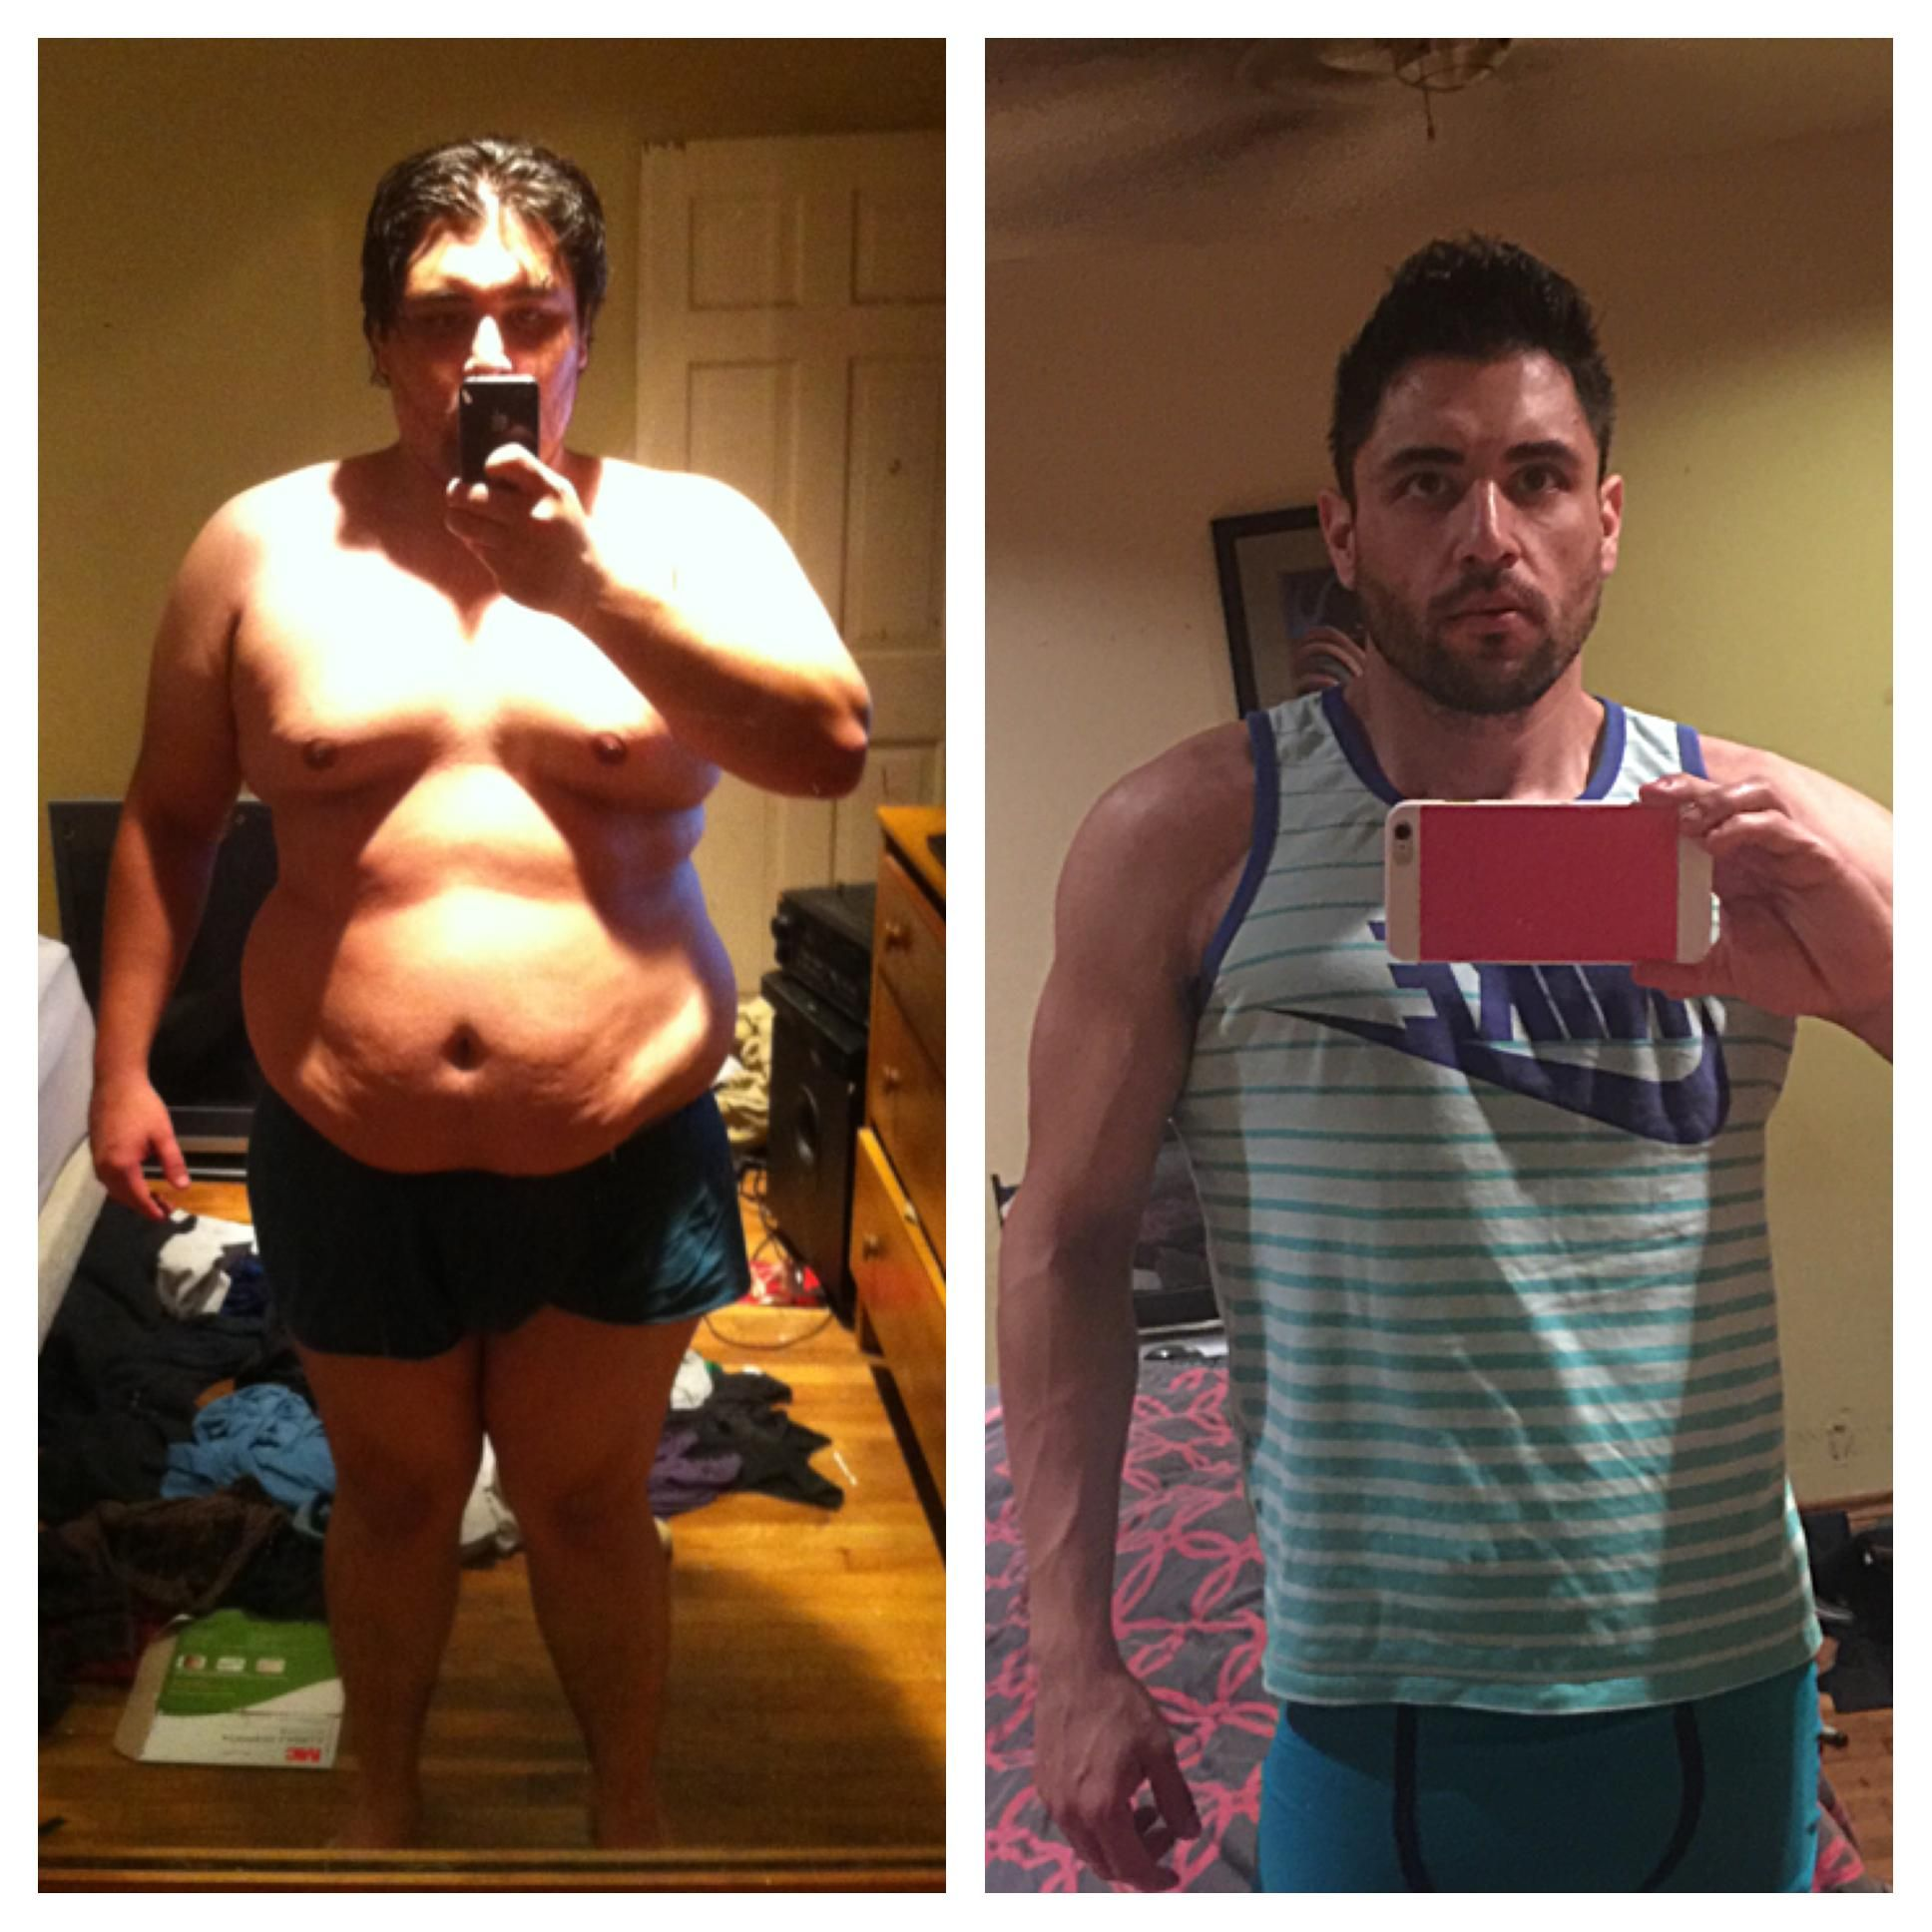 m 28 6 300 lbs 175 lbs 125 lbs 21 months i m back with a new